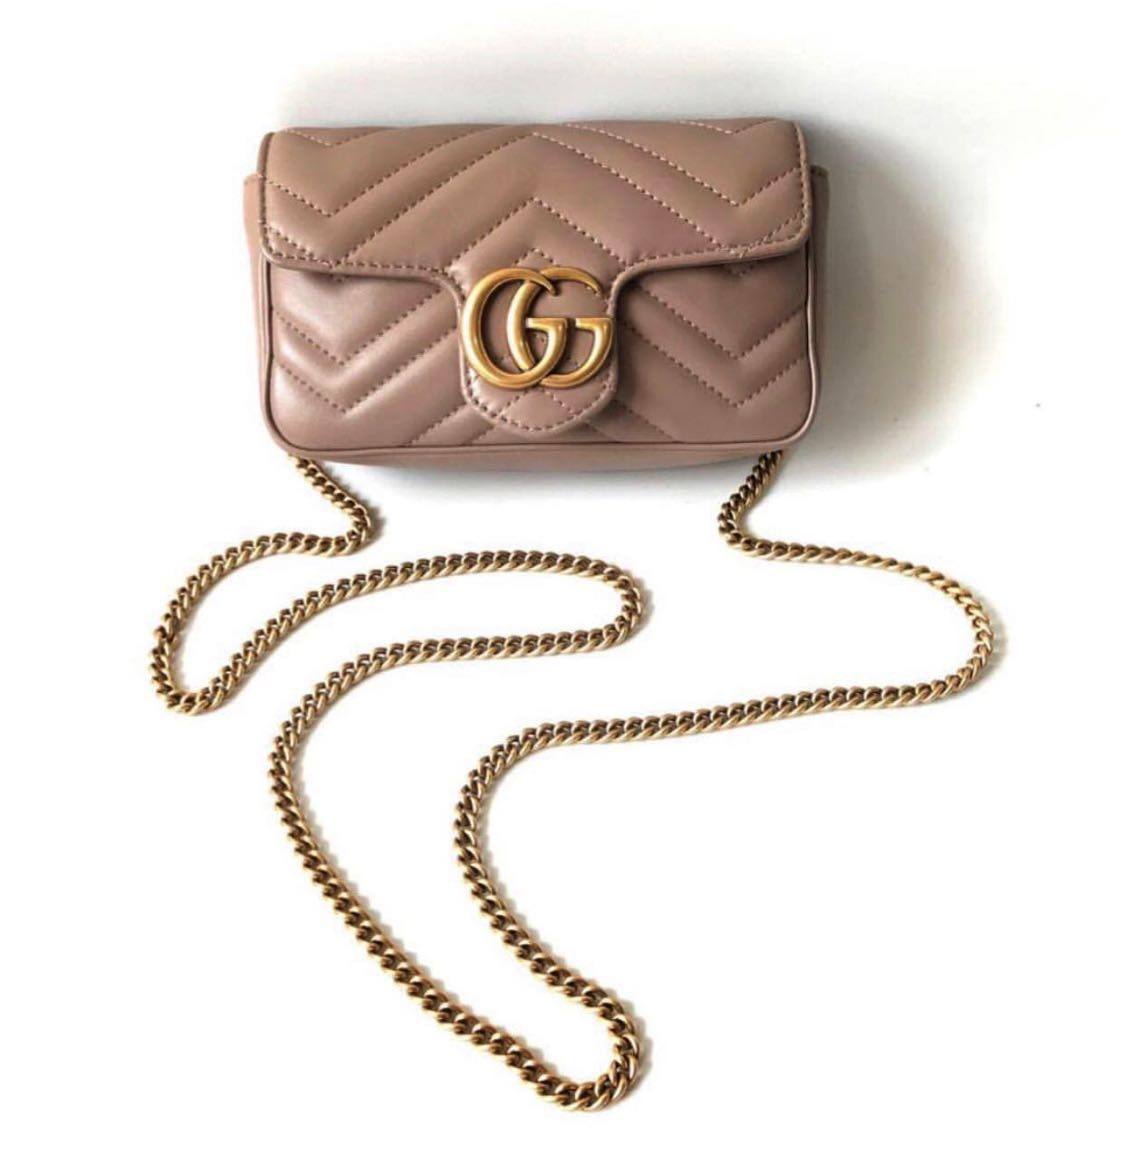 cccd54e07537 Gucci marmont [SALE], Luxury, Bags & Wallets, Handbags on Carousell